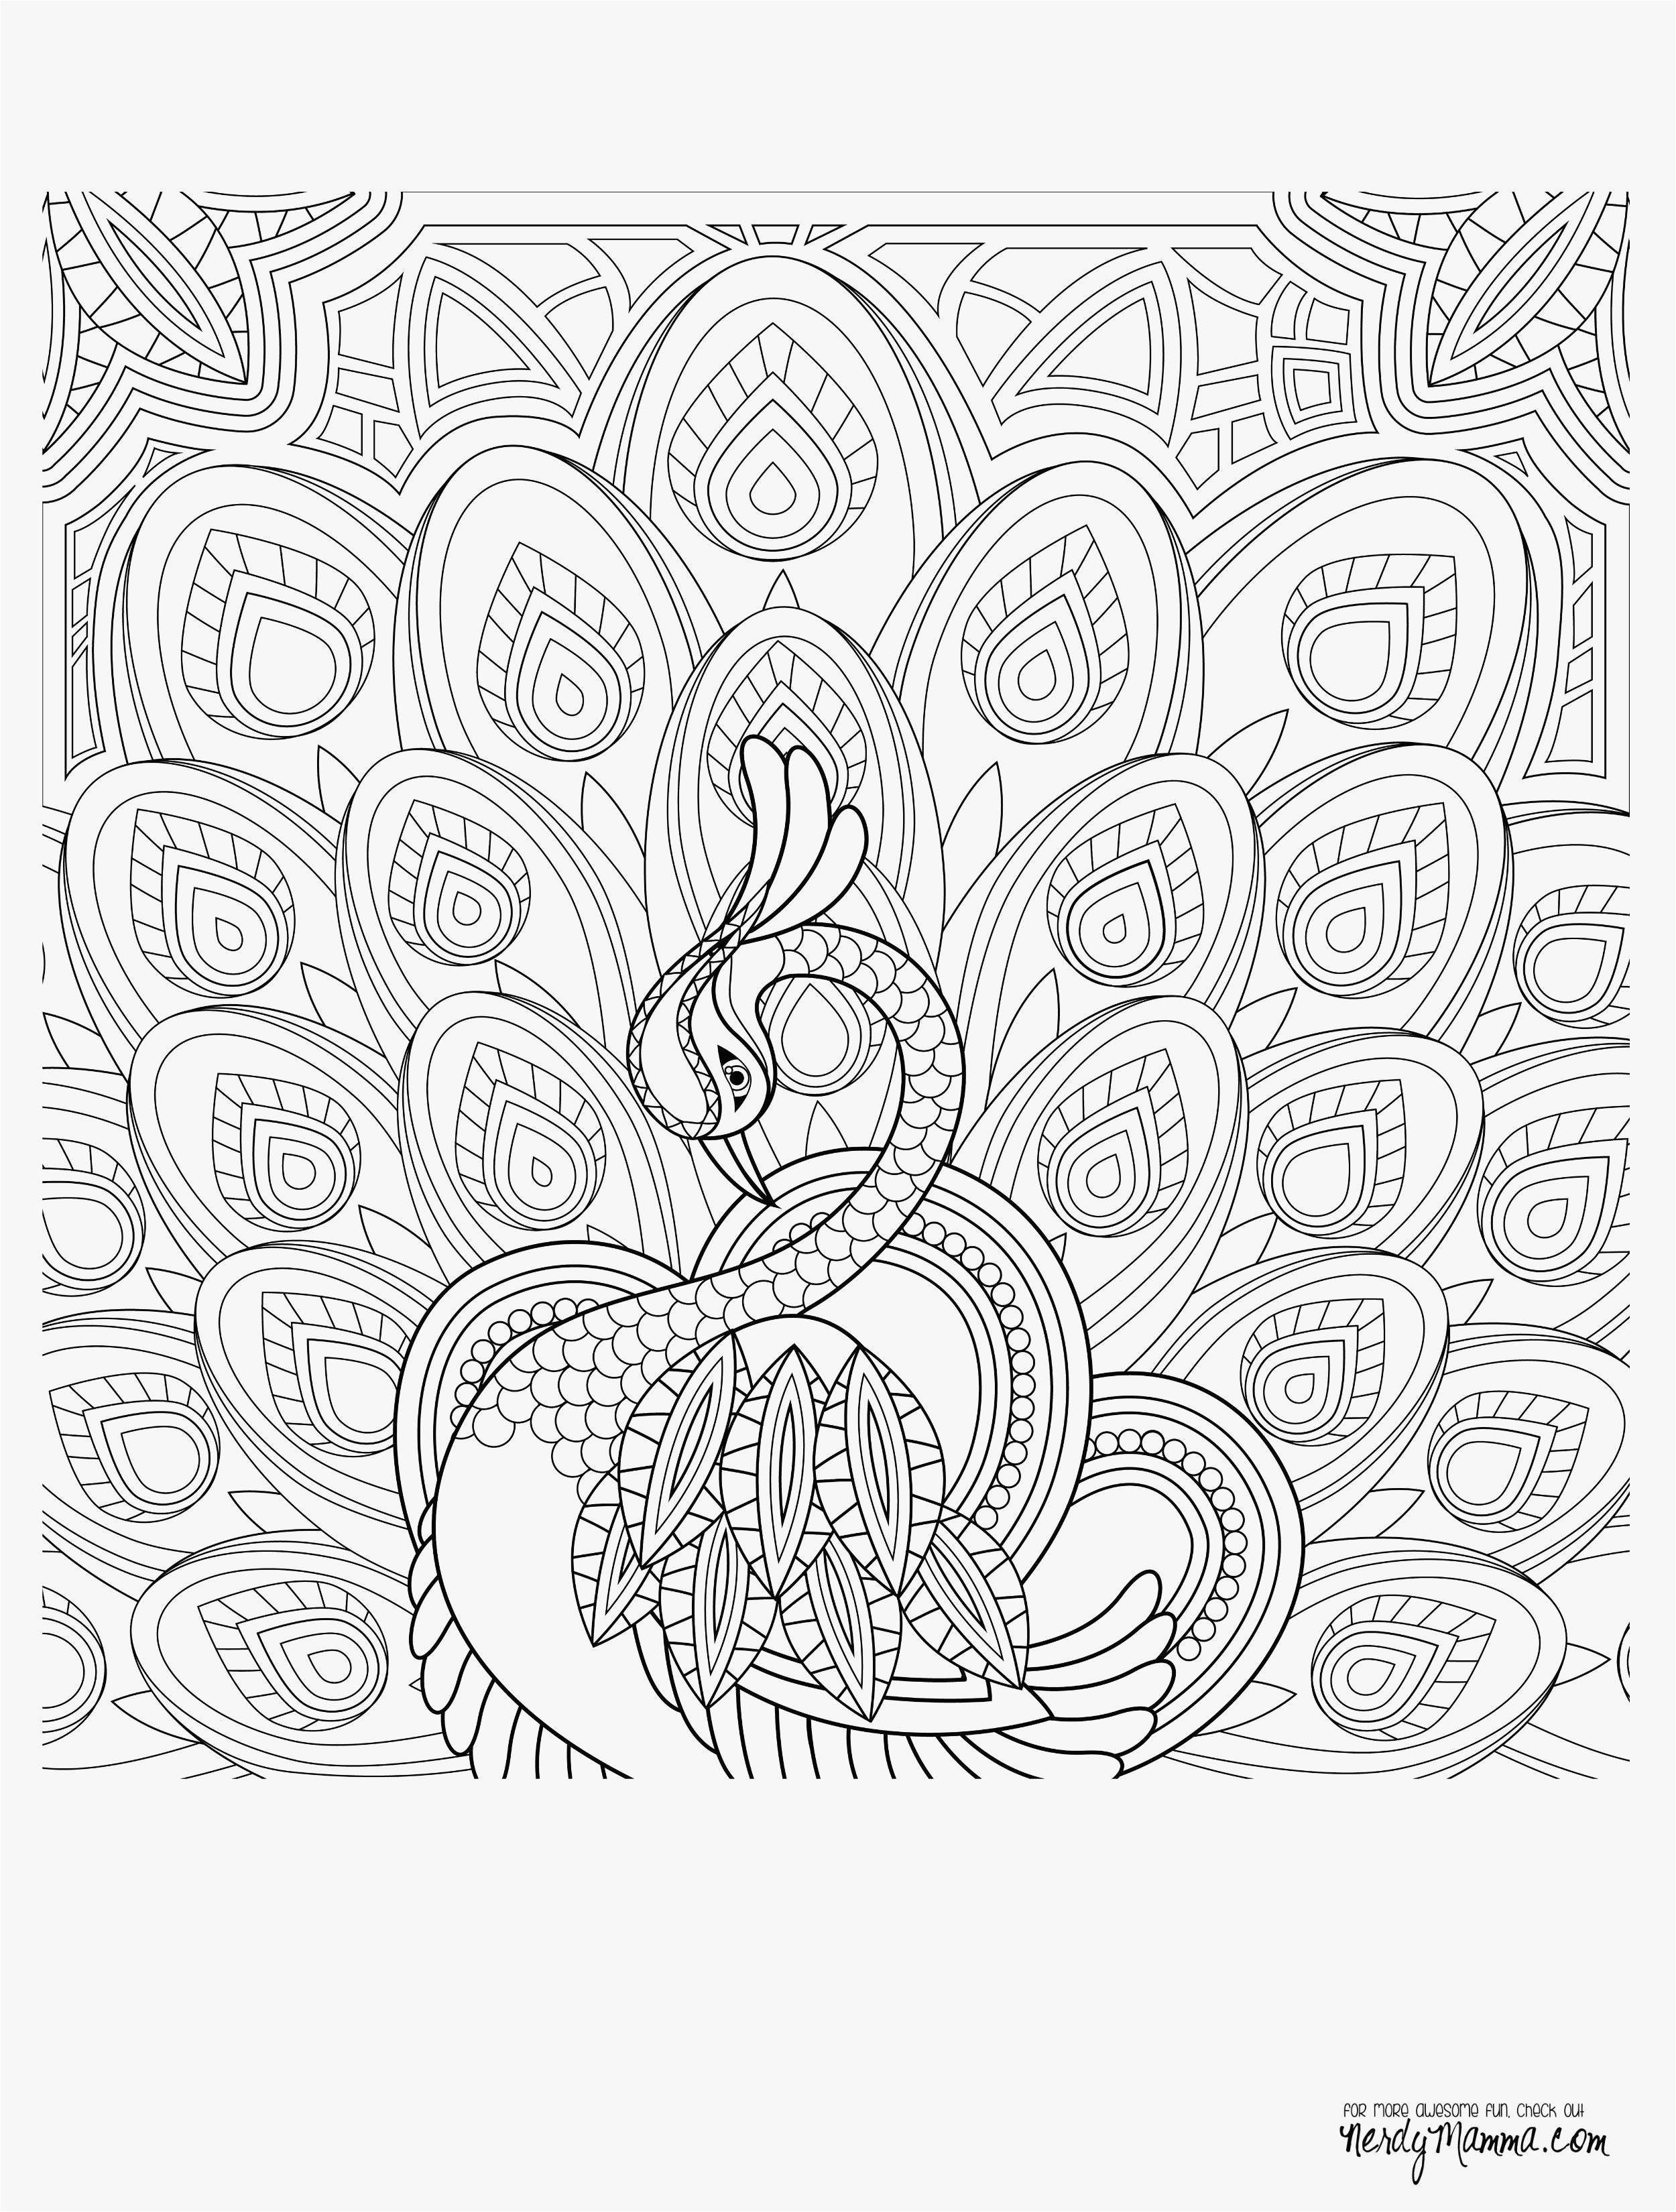 Walt Disney World Coloring Pages  to Print 3s - Save it to your computer